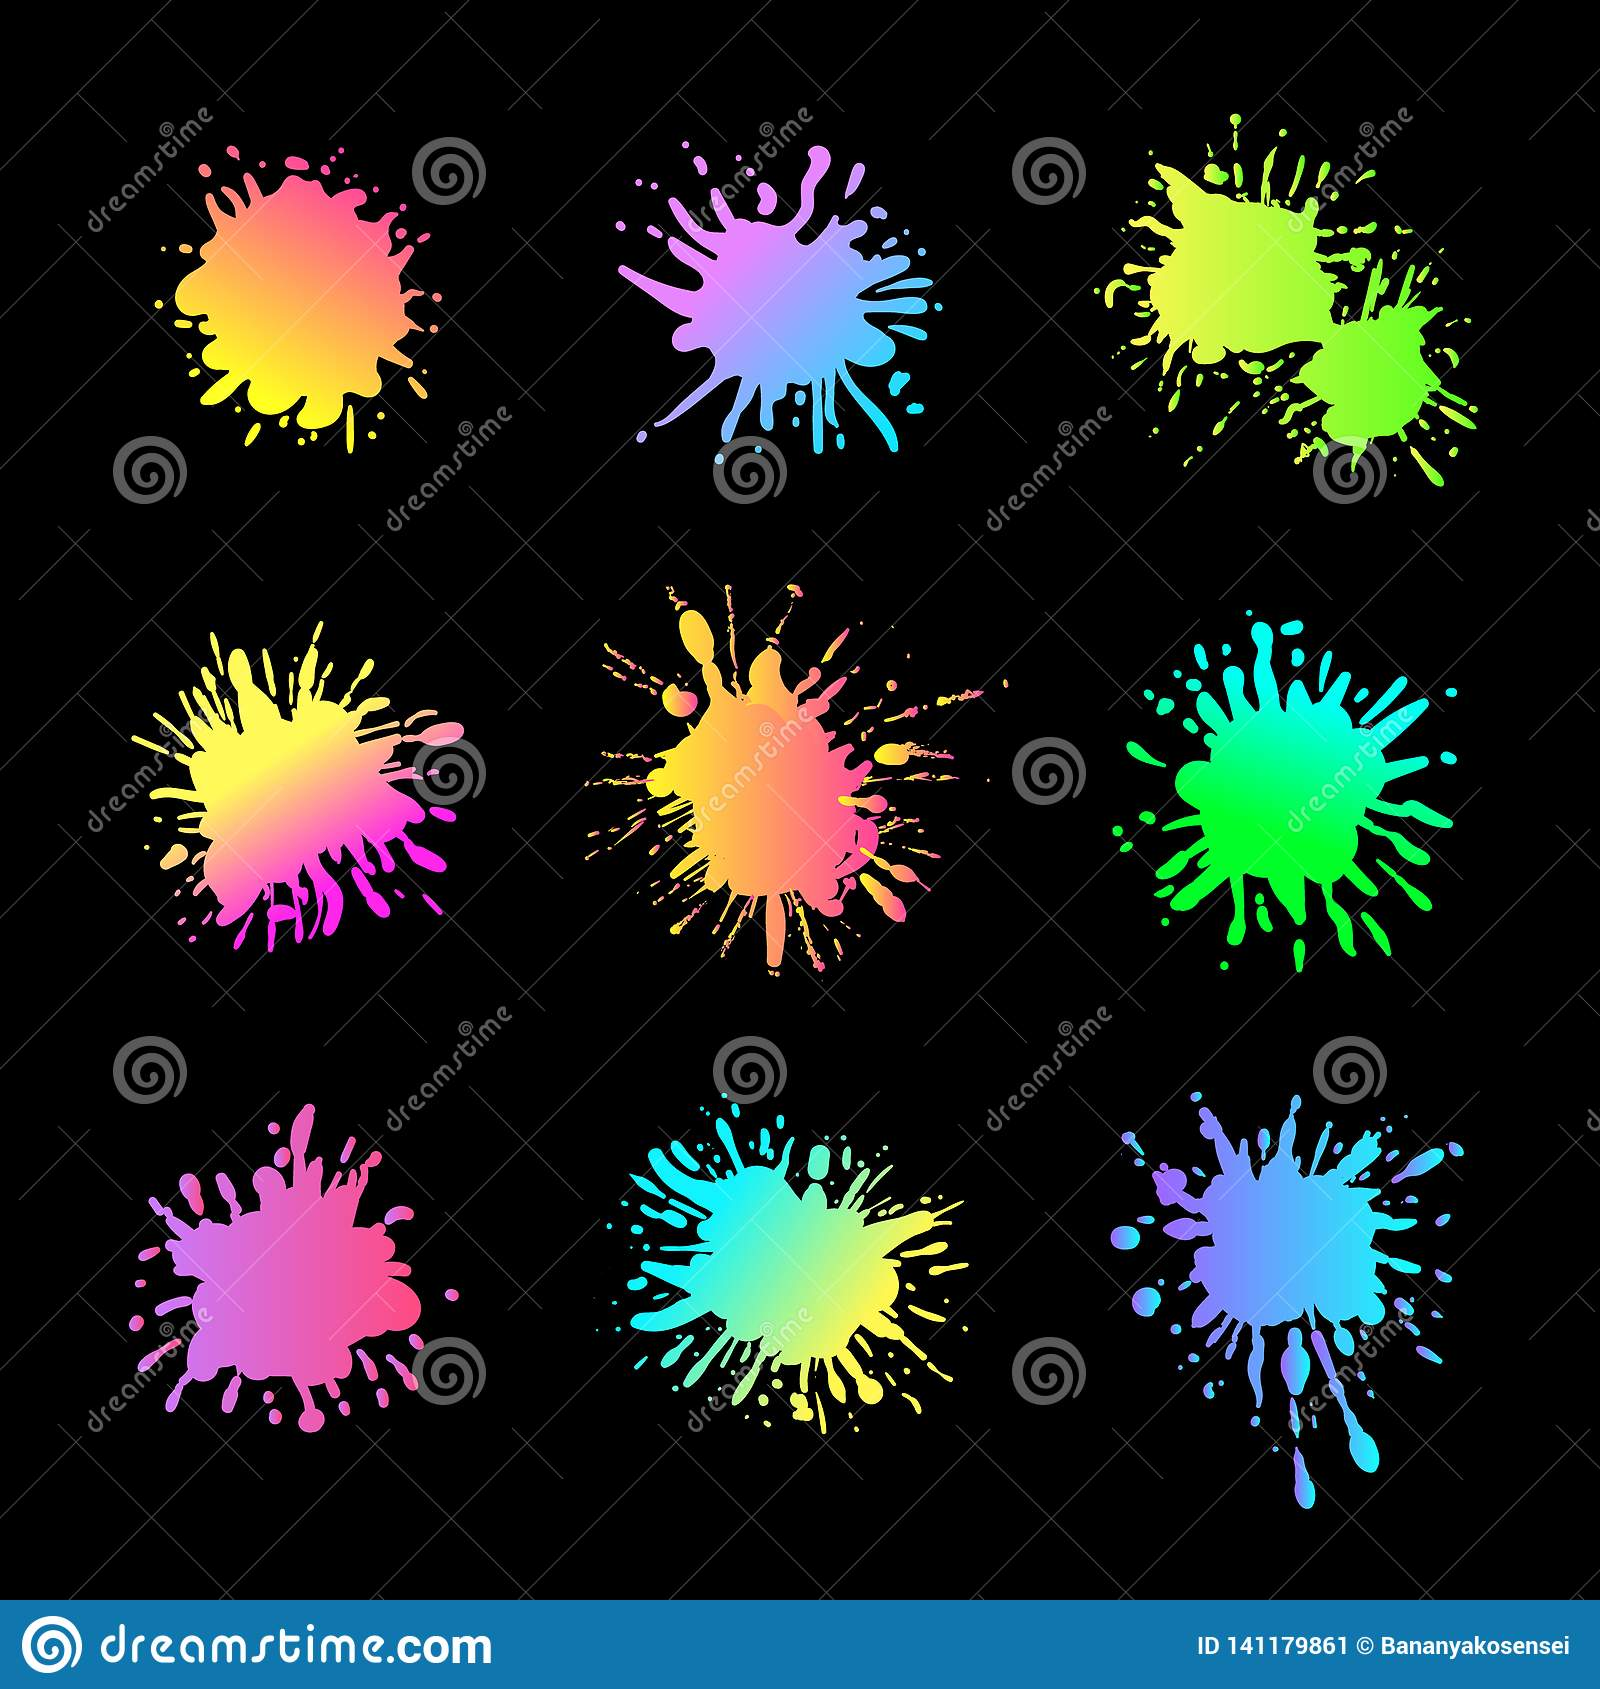 Vector Neon Paint Splashes Isolated on Black Background, Creative Design Elements Set.